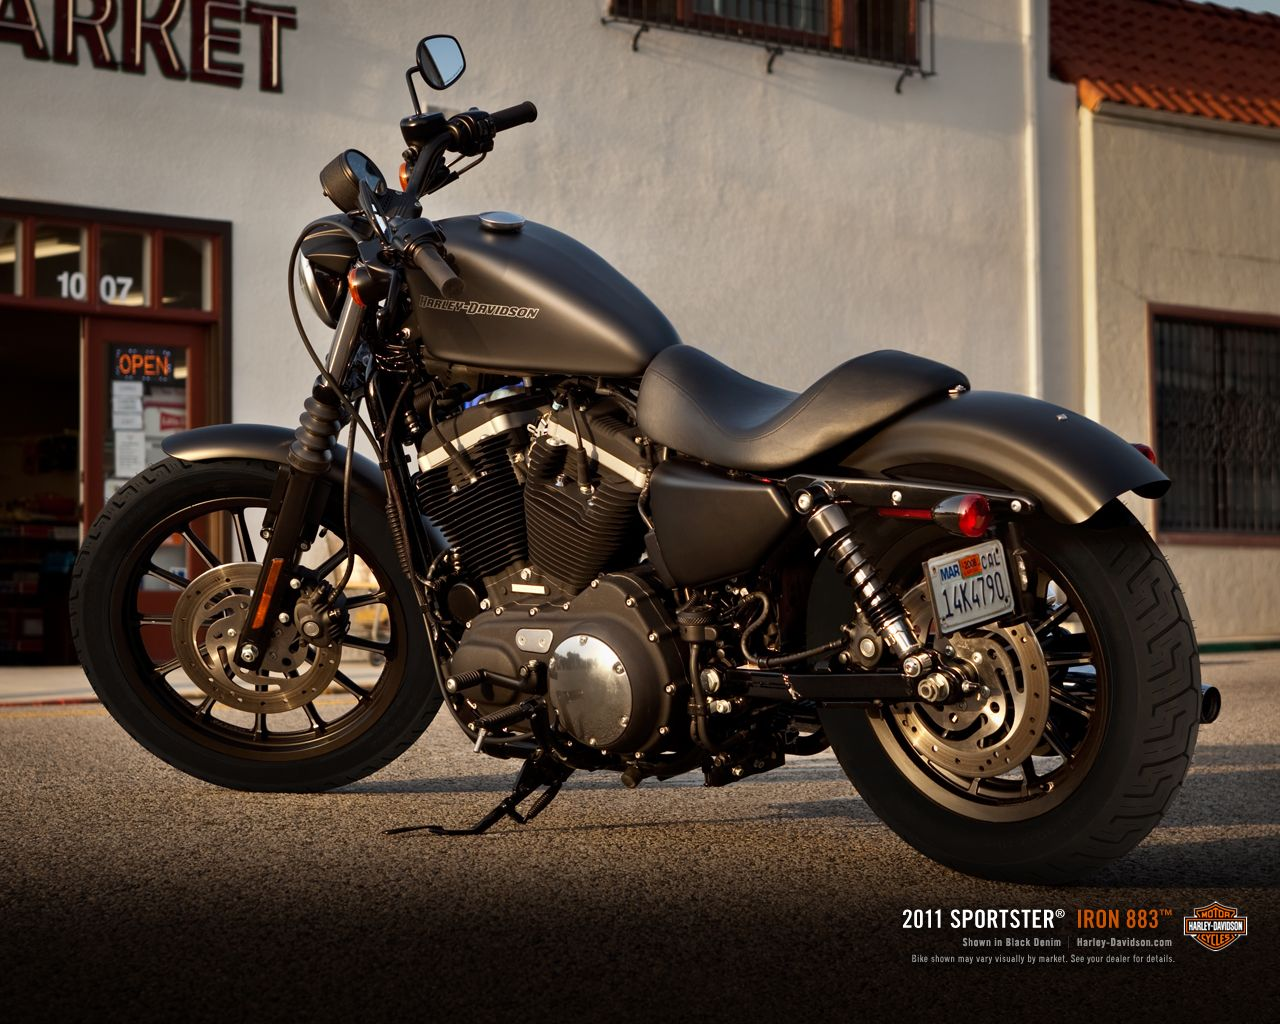 Harley davidson sportster iron 883 i will own this bike one day